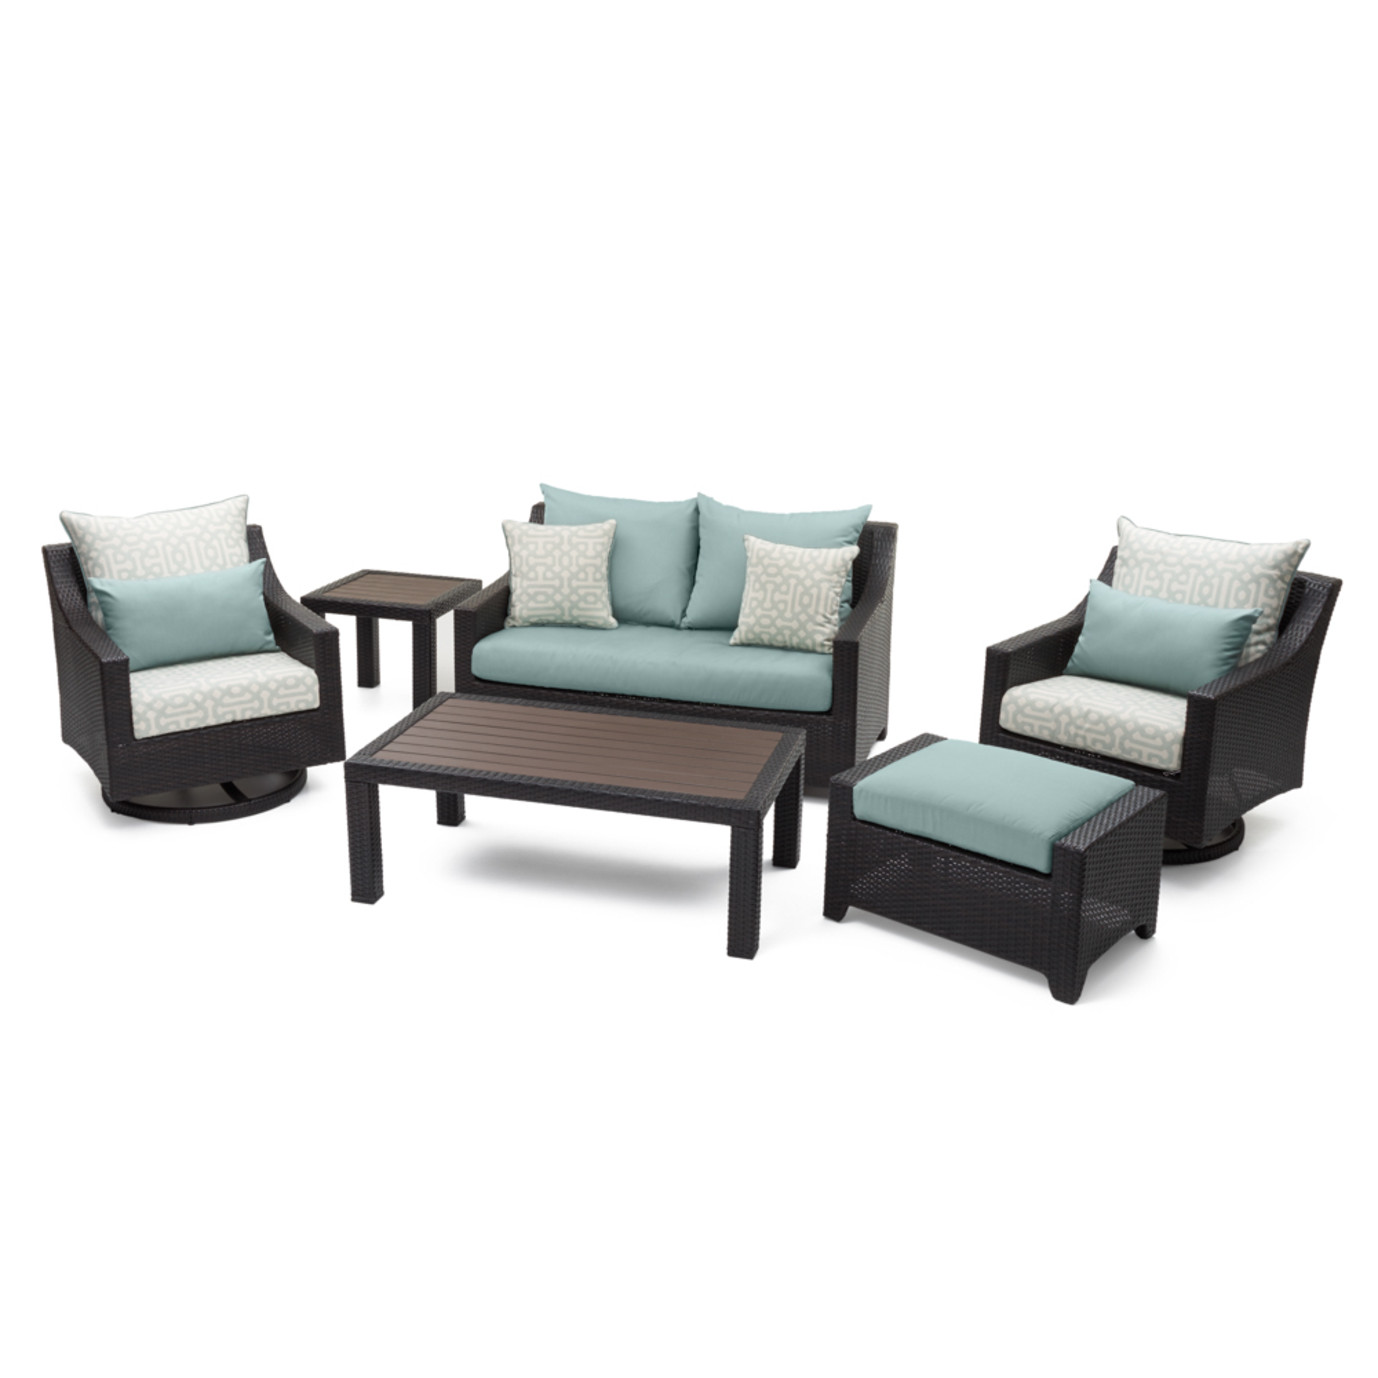 Deco™ Deluxe 6 Piece Love & Motion Club Seating Set